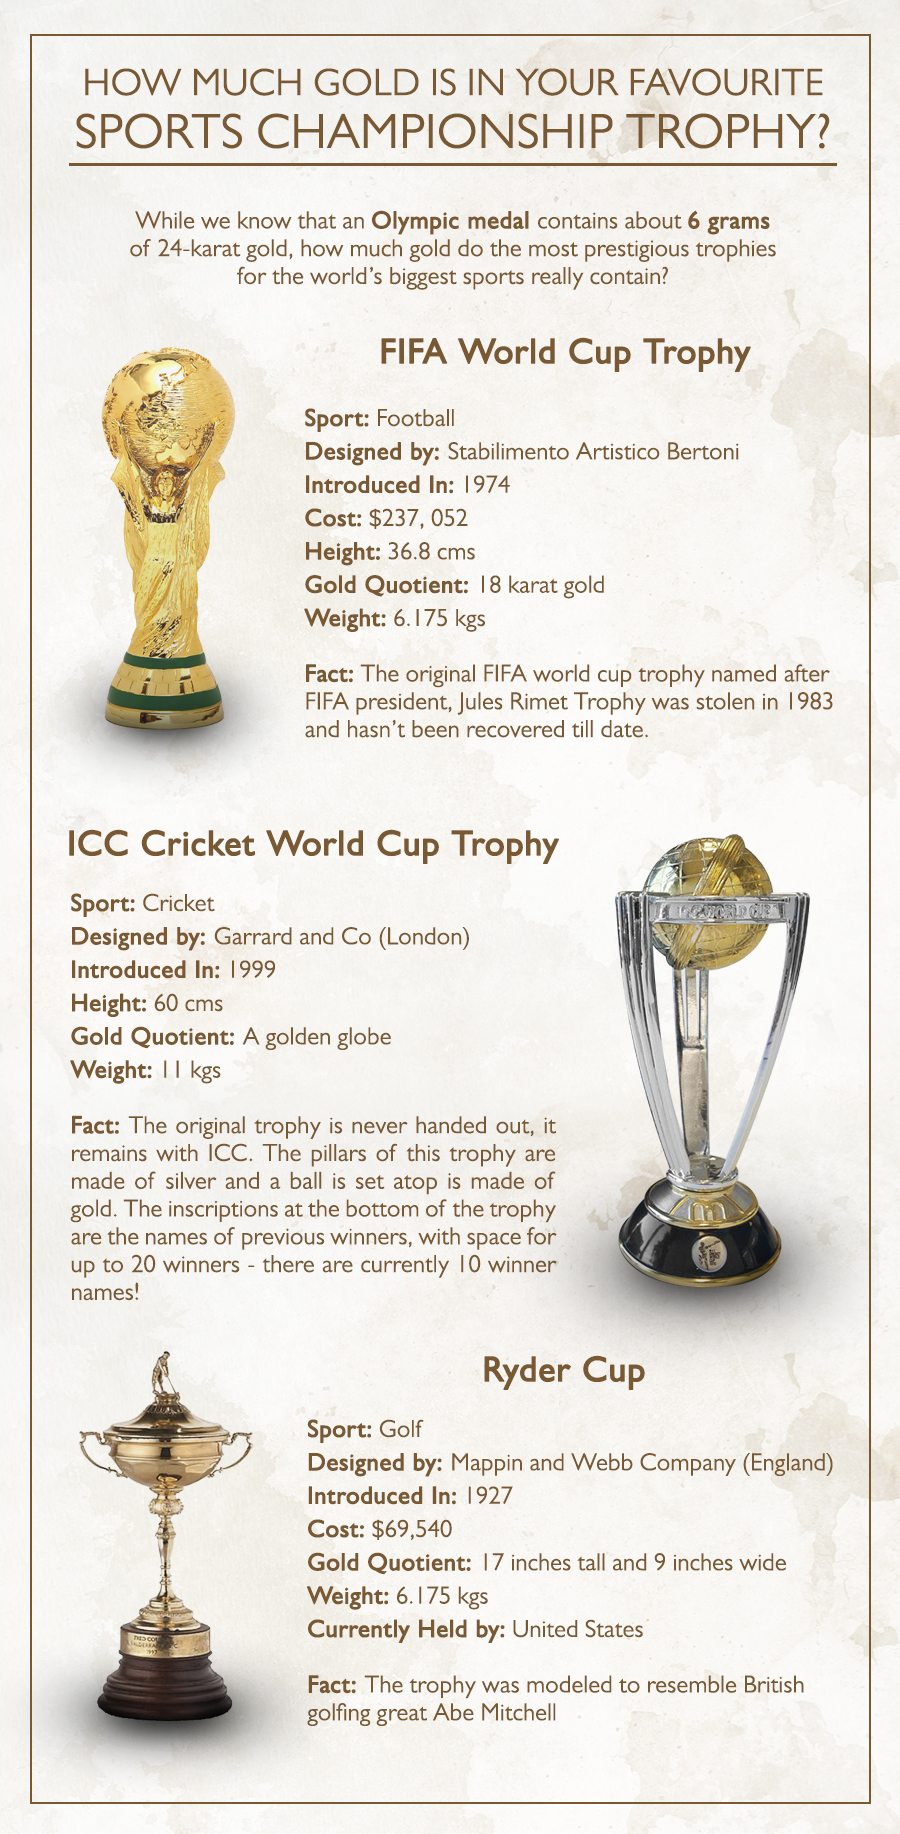 Apart from Olympics' medal there are various sporting events where trophies or medals are awarded which contain gold. Know facts about the amount of gold various trophies in famous sports contain.